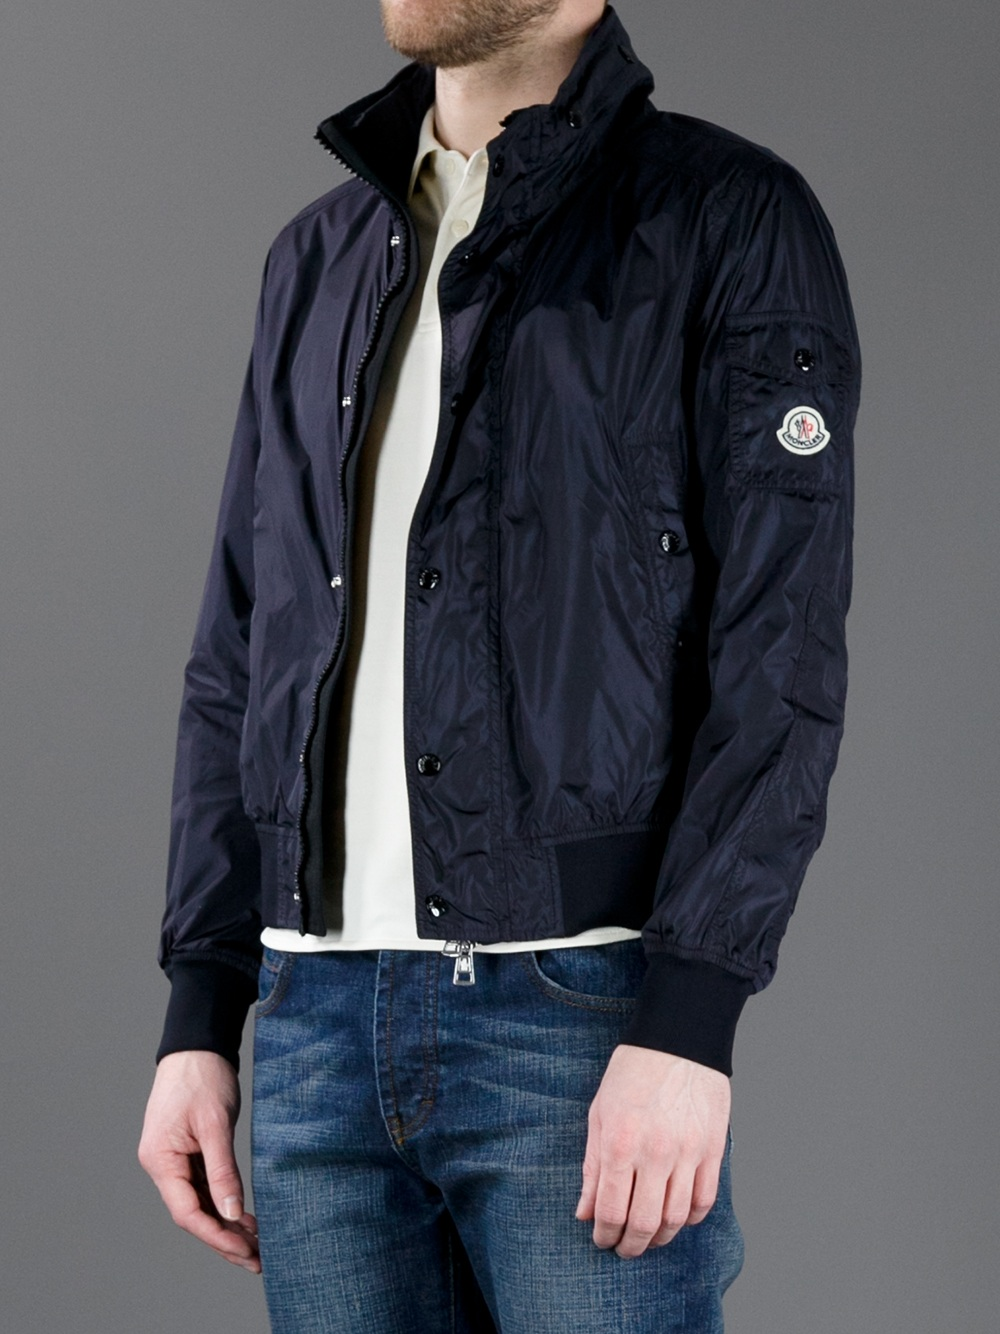 moncler jacket sale mens